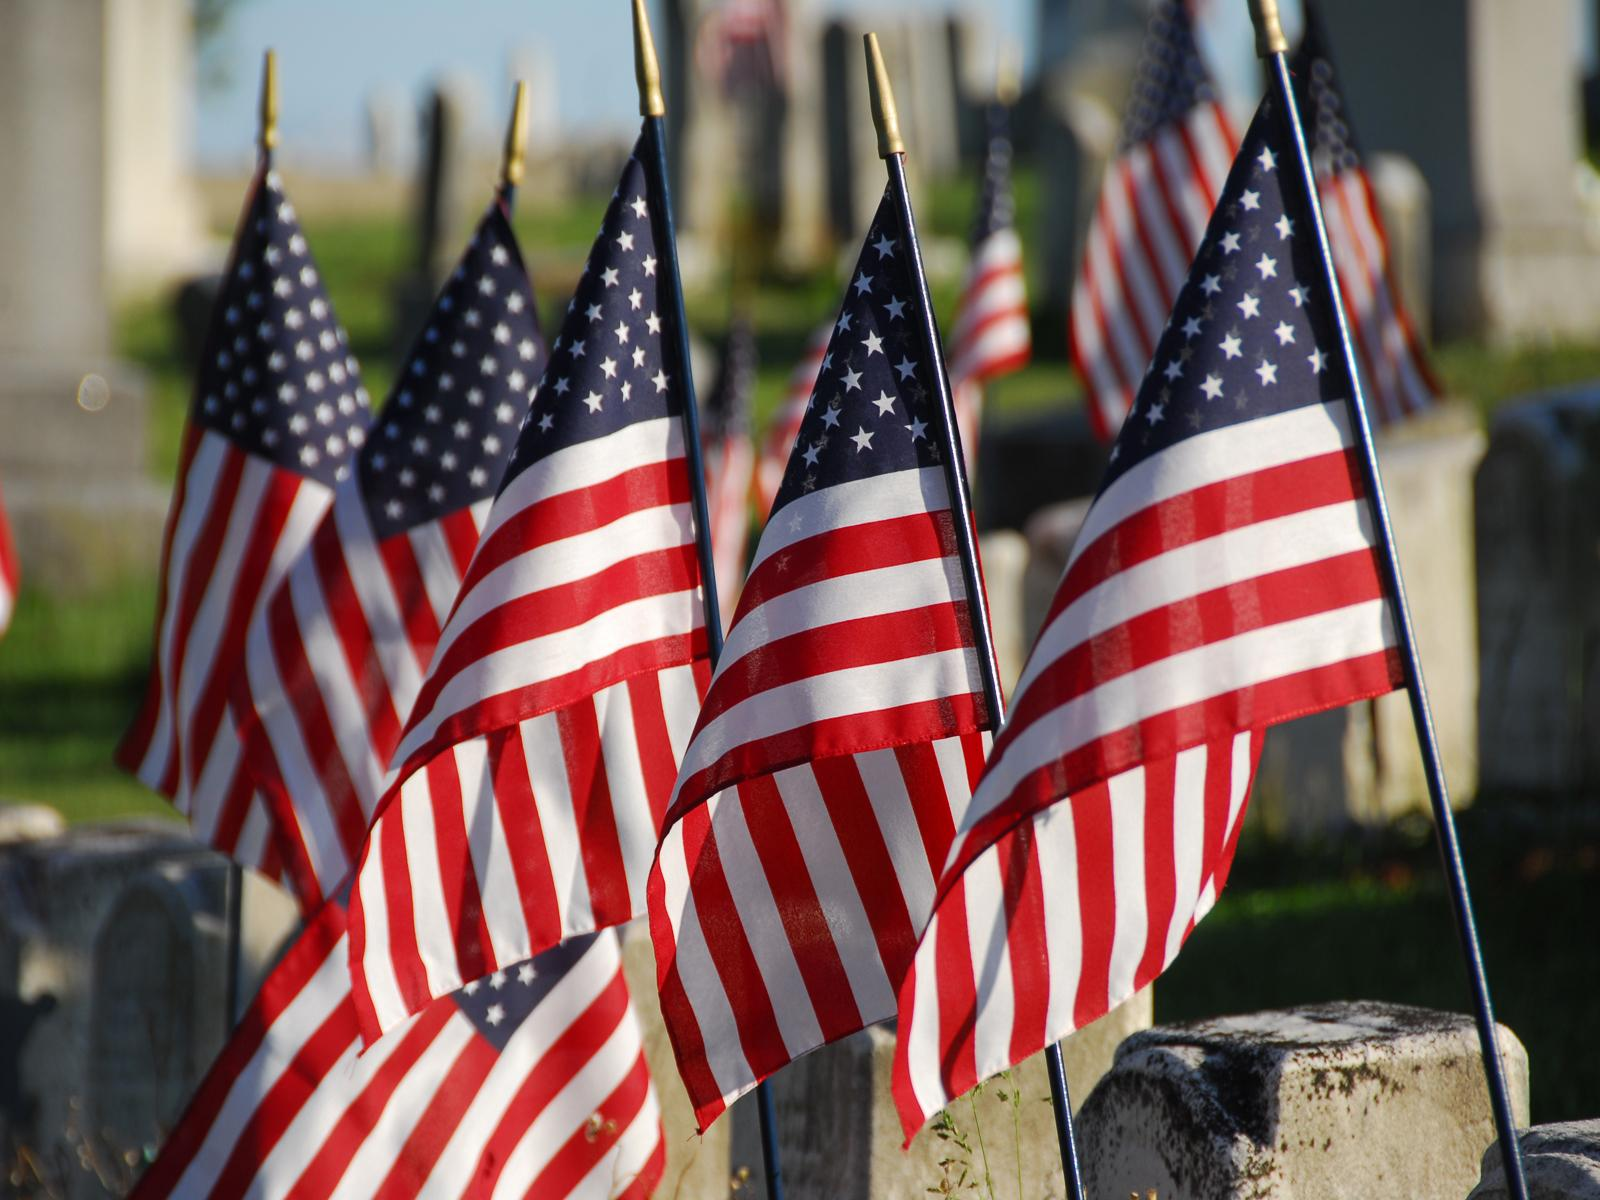 30^ Happy Memorial Day Image 2019 Free Download, Clip Art